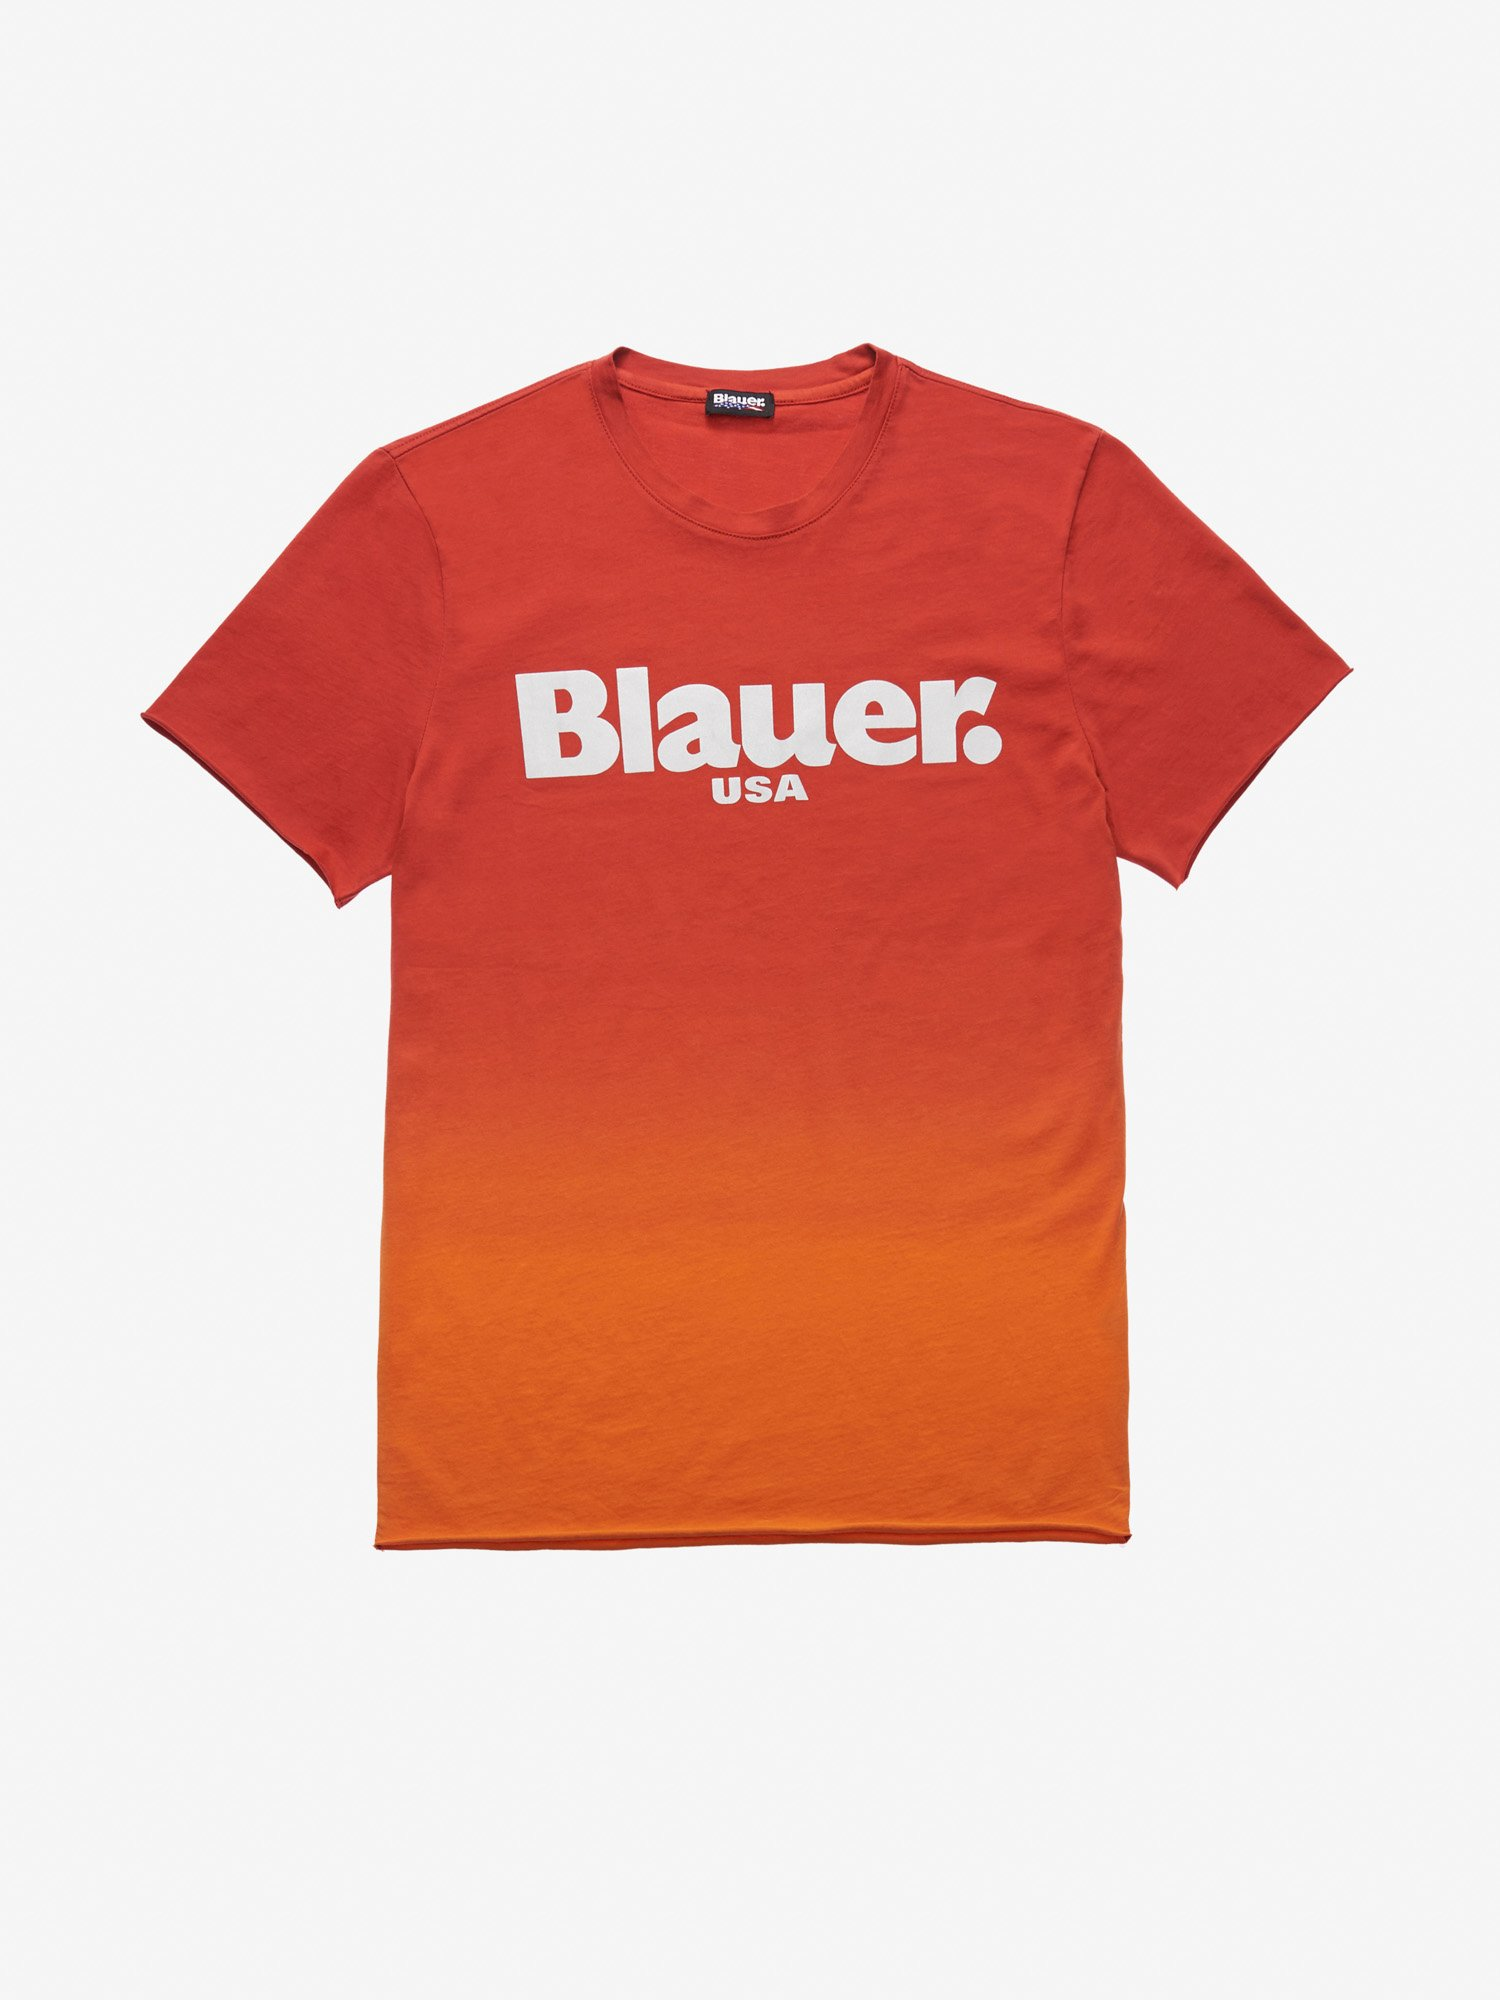 SHADED T-SHIRT - Blauer